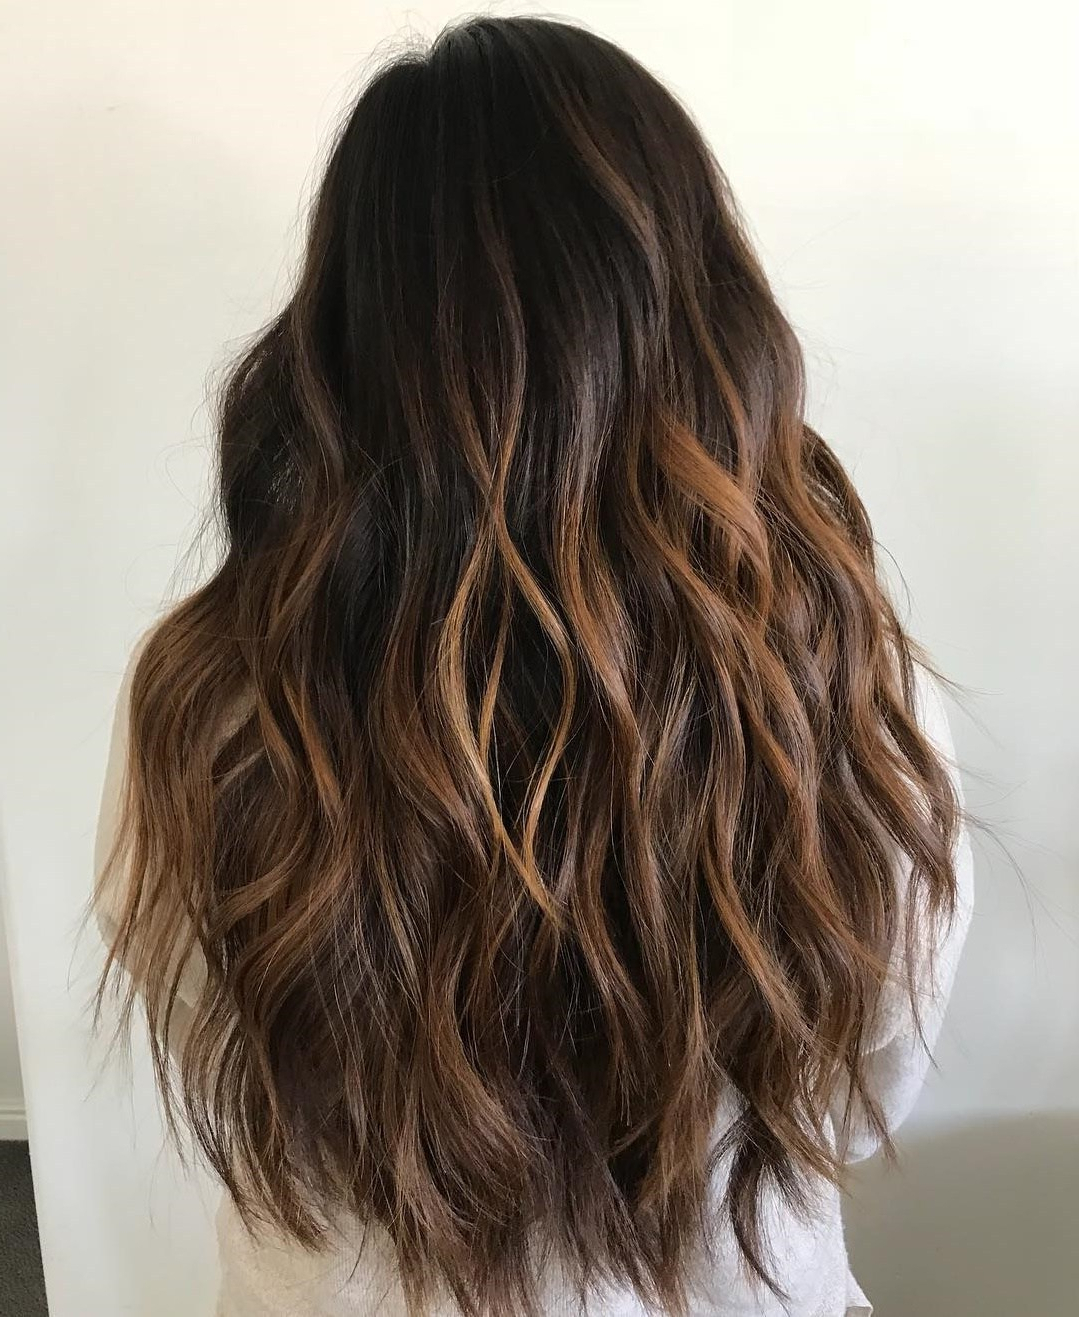 Most Recent Long Wavy Layers Hairstyles Throughout 50 Hairstyles For Thick Wavy Hair You Will Adore – Hair (View 4 of 20)